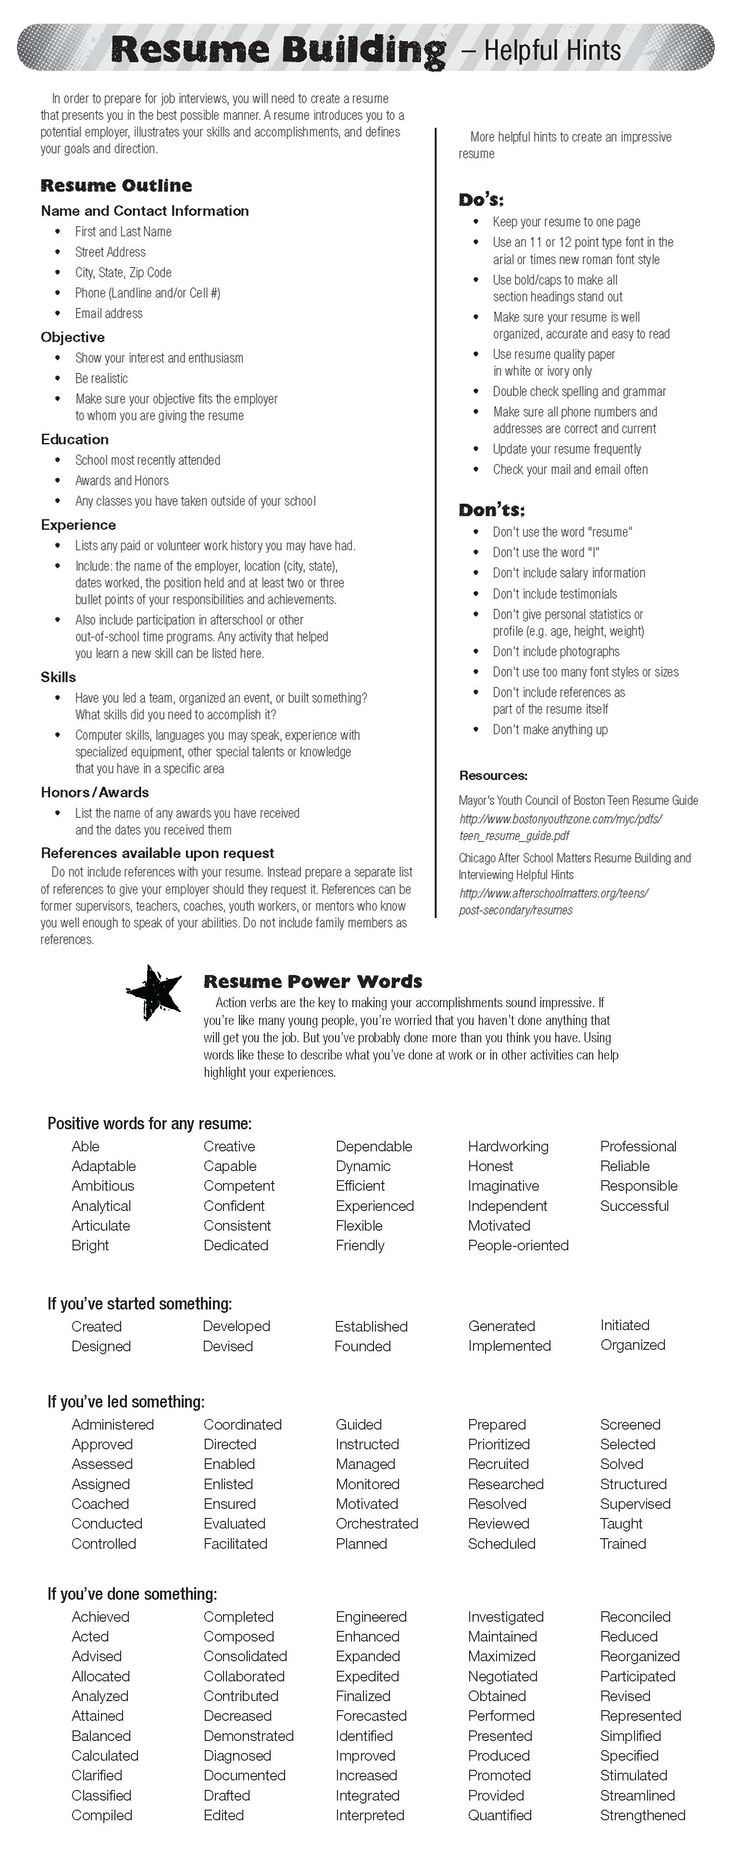 Picnictoimpeachus  Scenic  Ideas About Resume On Pinterest  Cv Format Resume  With Engaging Check Out Todays Resume Building Tips Resume Resumepowerwords With Delightful Nanny Resume Samples Also Current Resume Styles In Addition Retail Resume Example And Marketing Resume Sample As Well As Med School Resume Additionally Sample Warehouse Resume From Pinterestcom With Picnictoimpeachus  Engaging  Ideas About Resume On Pinterest  Cv Format Resume  With Delightful Check Out Todays Resume Building Tips Resume Resumepowerwords And Scenic Nanny Resume Samples Also Current Resume Styles In Addition Retail Resume Example From Pinterestcom